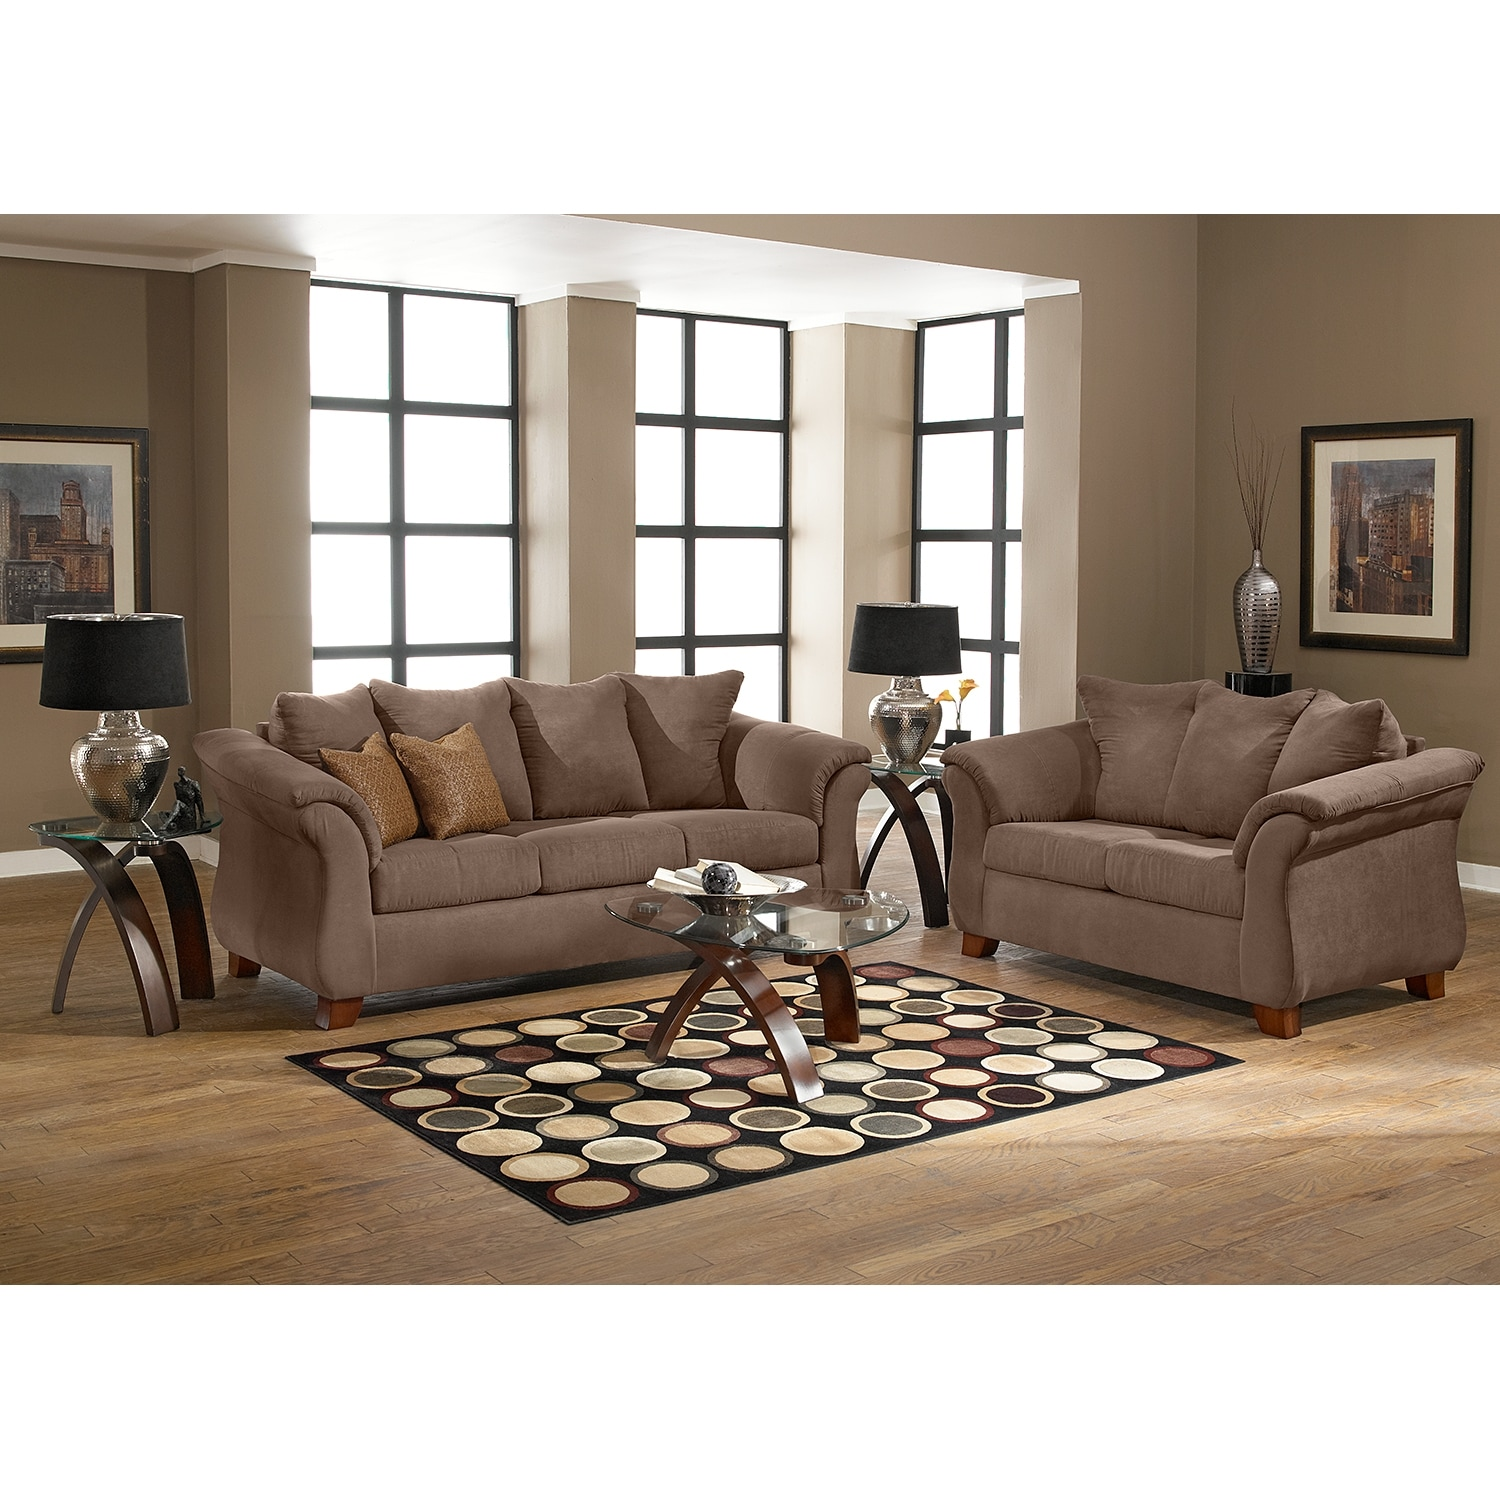 adrian sofa taupe value city furniture. Black Bedroom Furniture Sets. Home Design Ideas